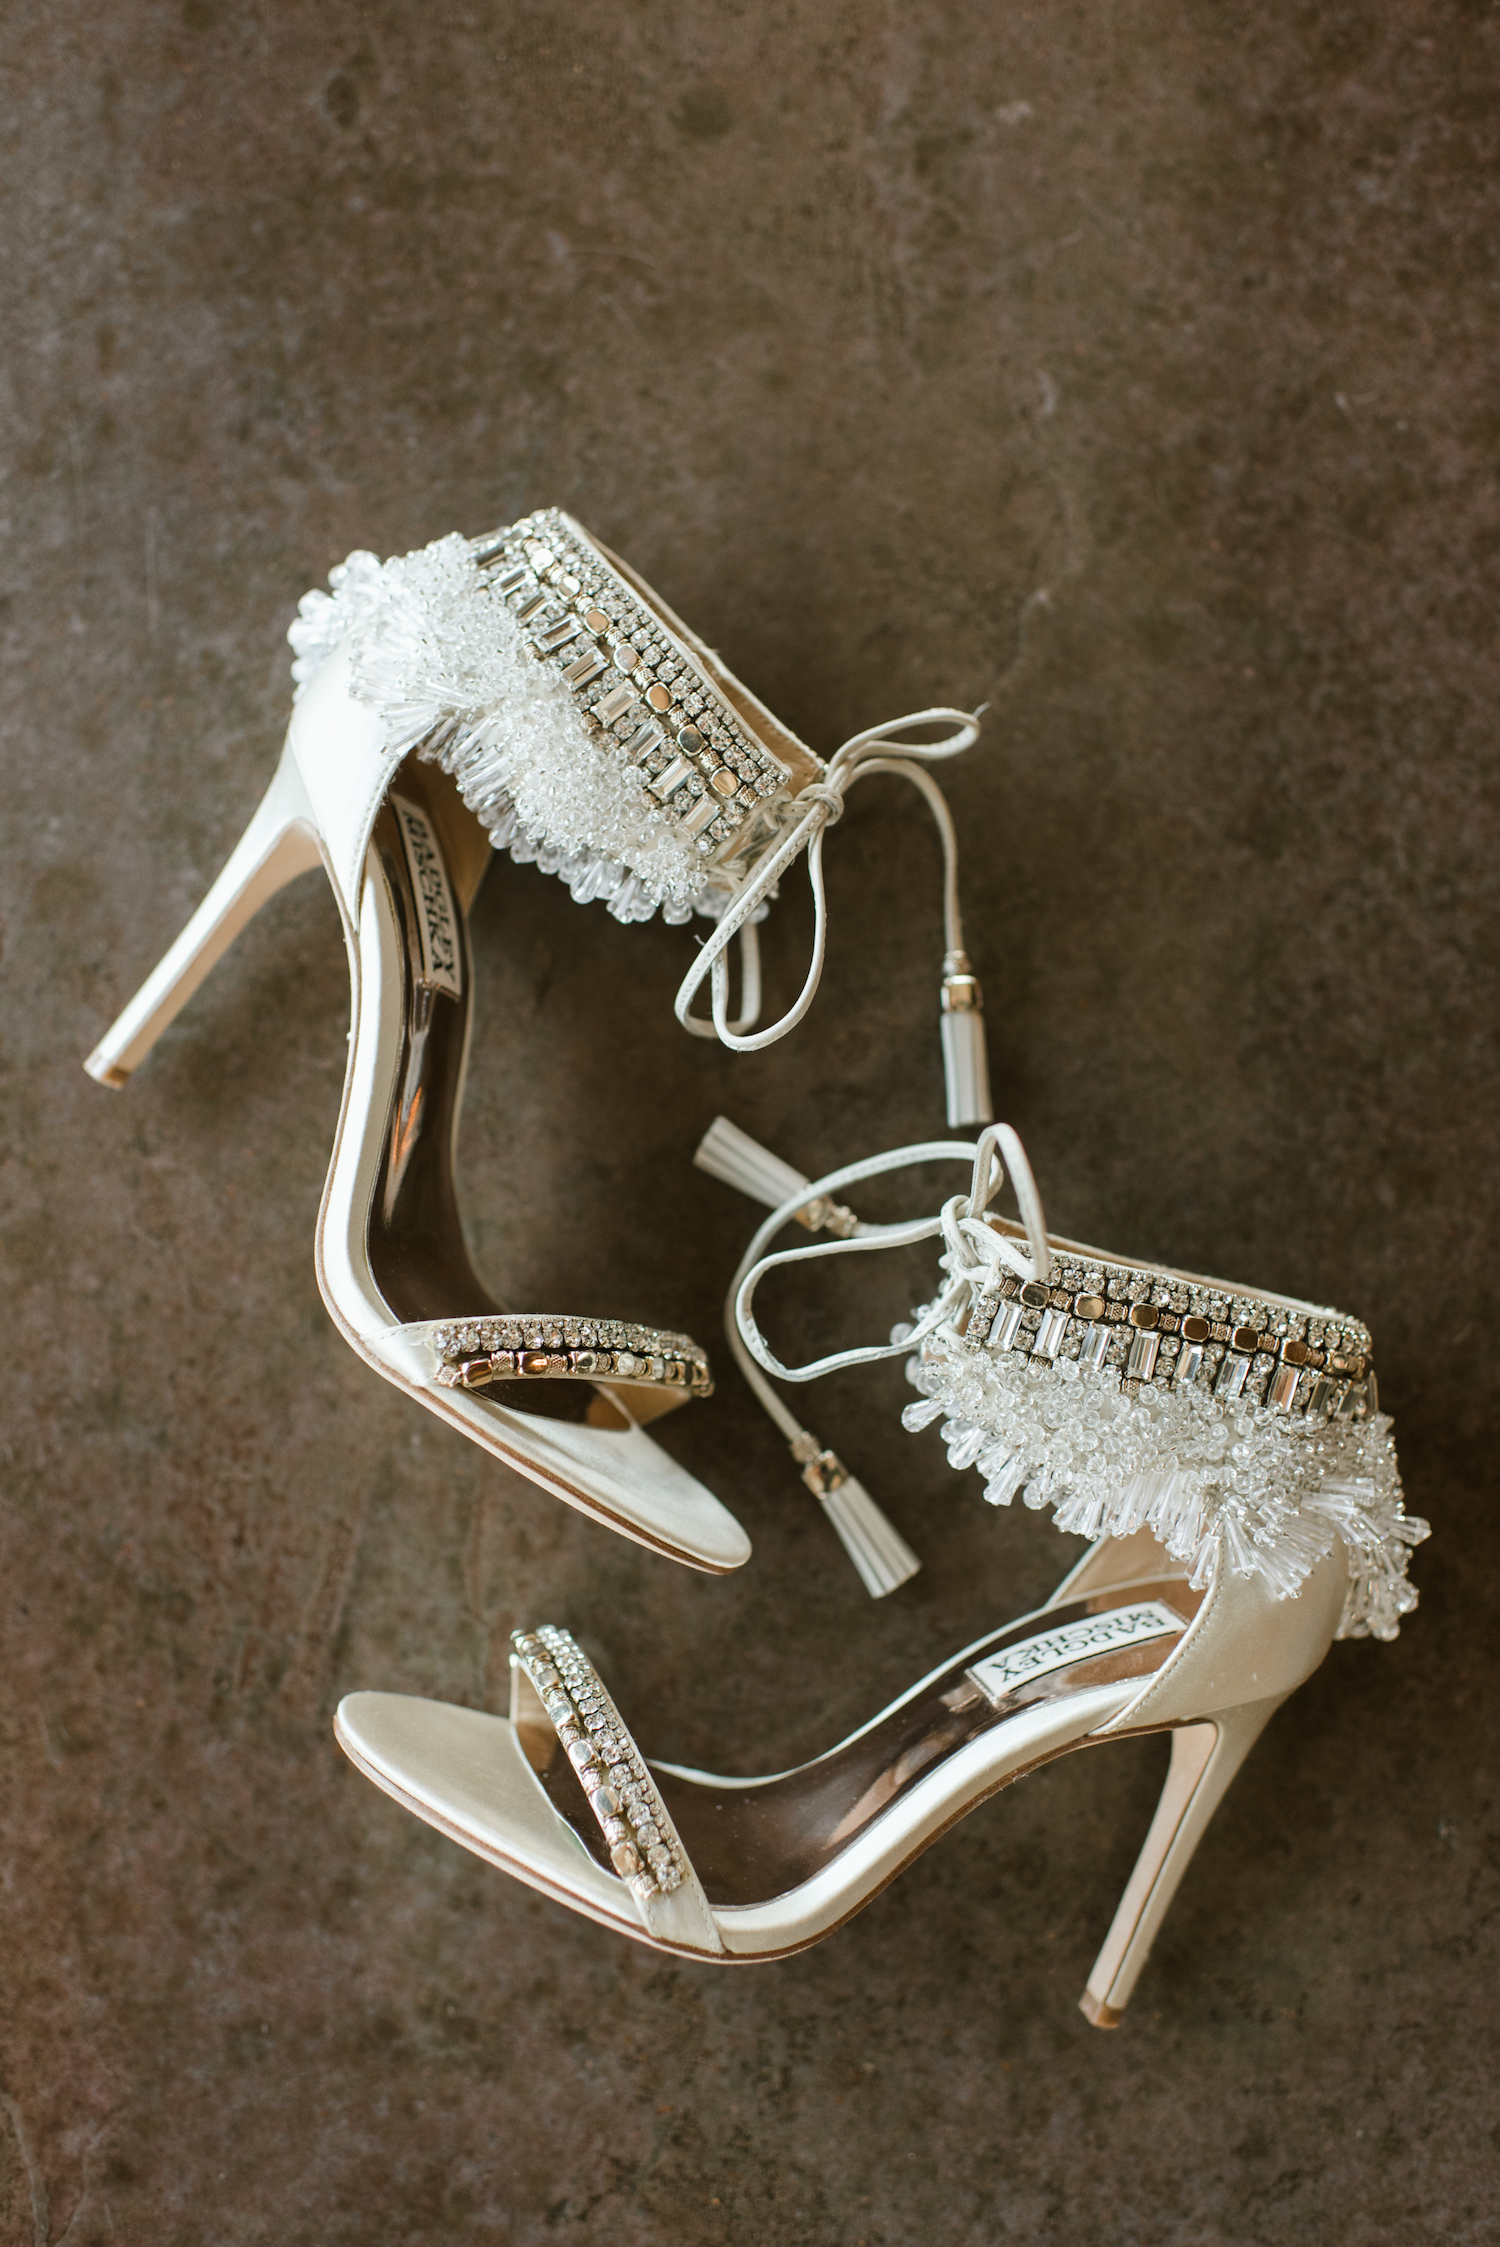 Bridal Shoes: Upscale Marble Graystone Quarry Wedding featured on Nashville Bride Guide